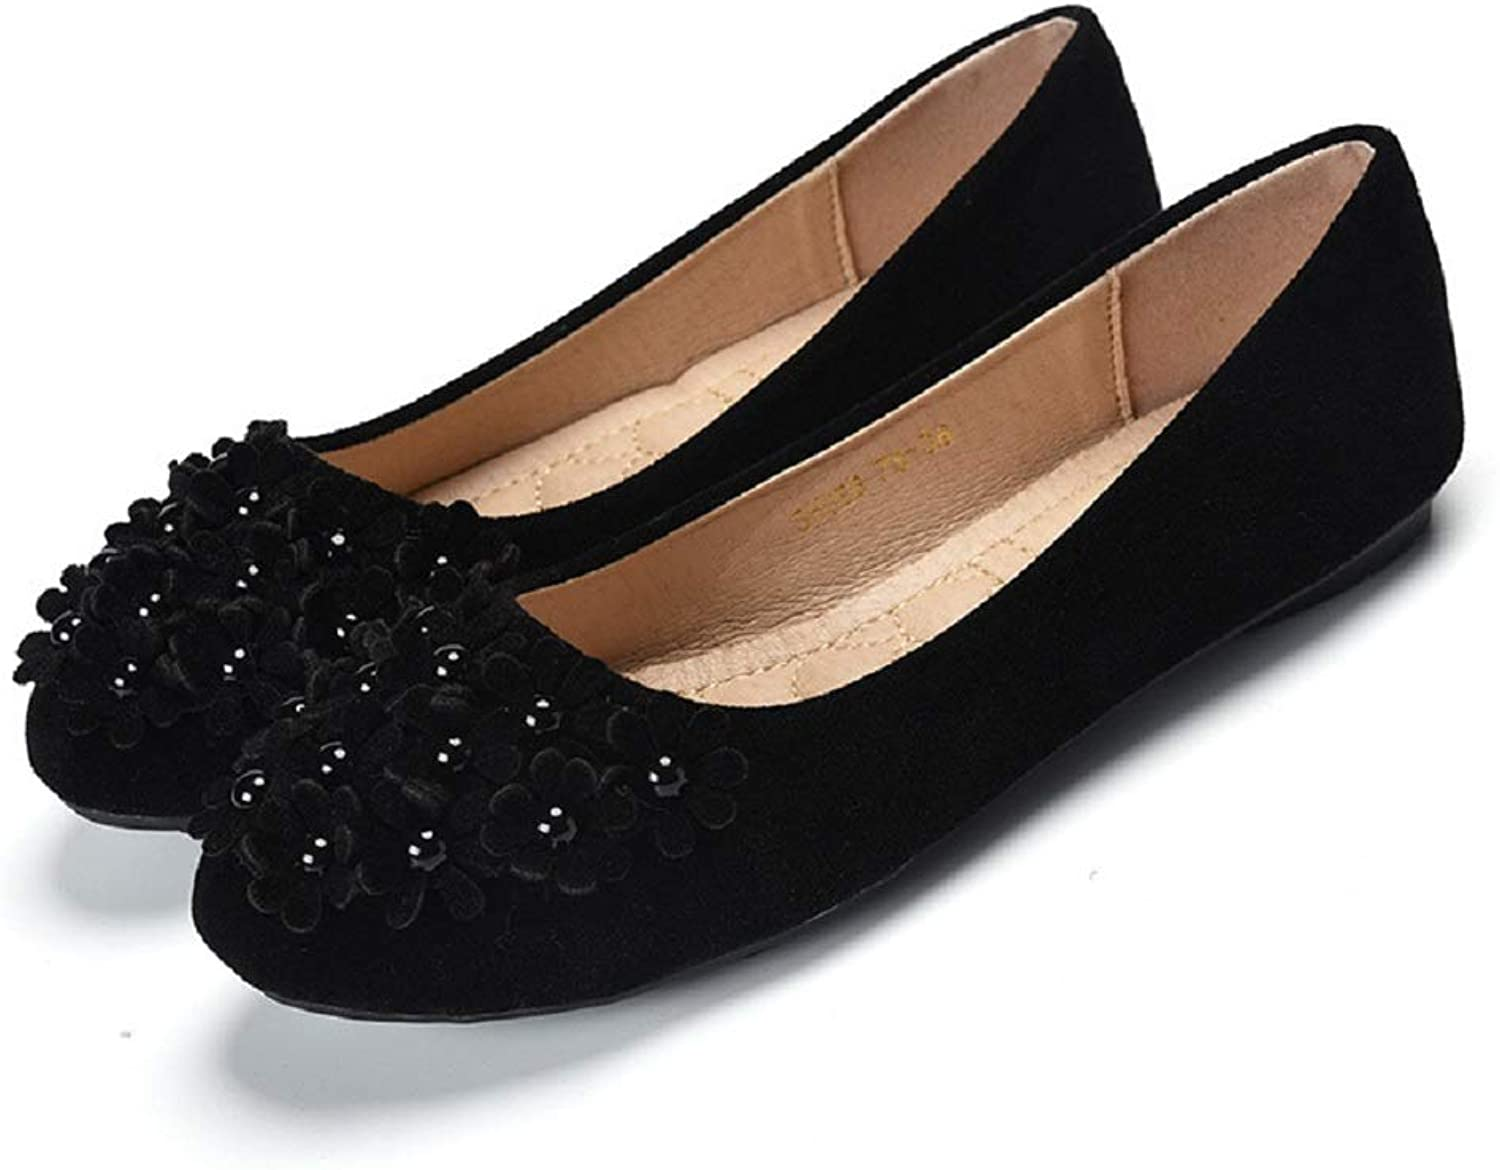 Rhinestone Ballet Flats Women Flower Faux Suede shoes (color   Black, Size   CA 12)